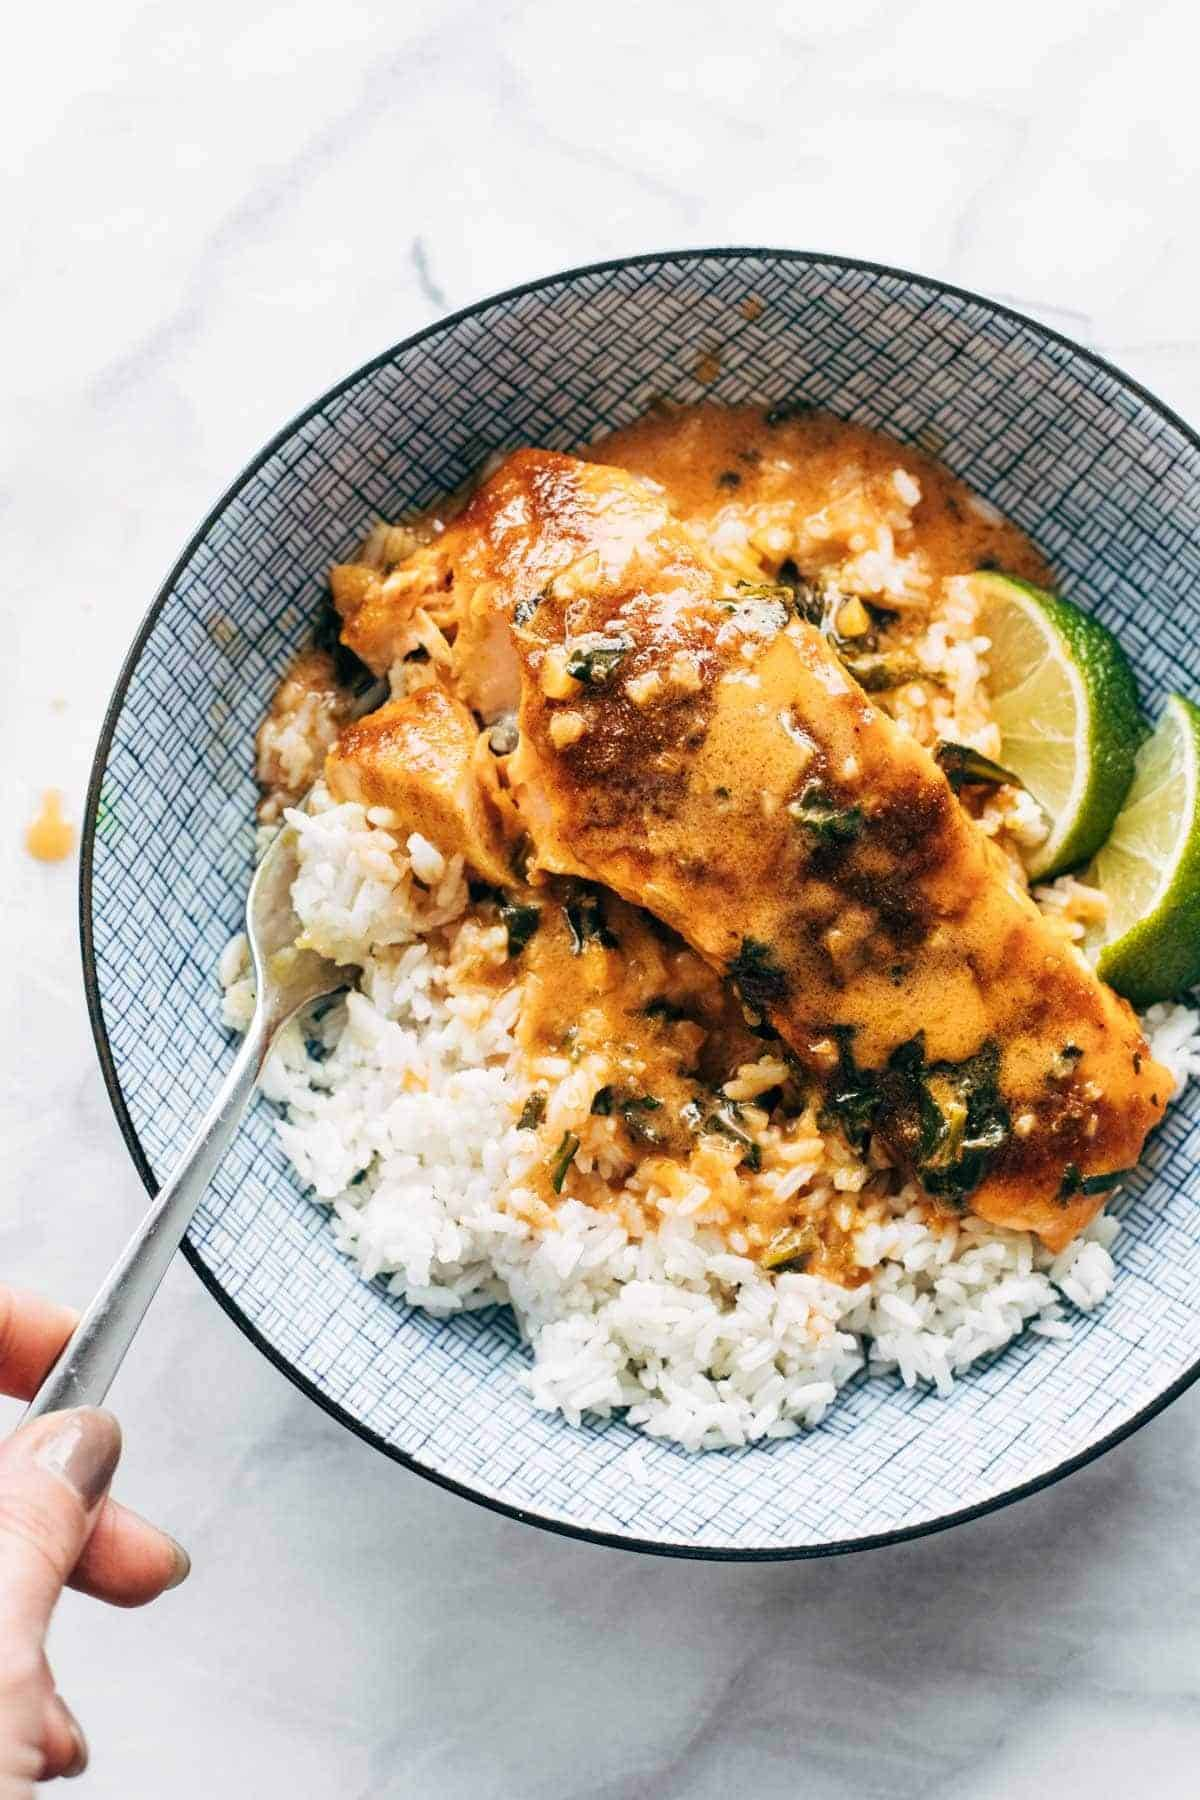 Coconut Curry Salmon with rice in a bowl.